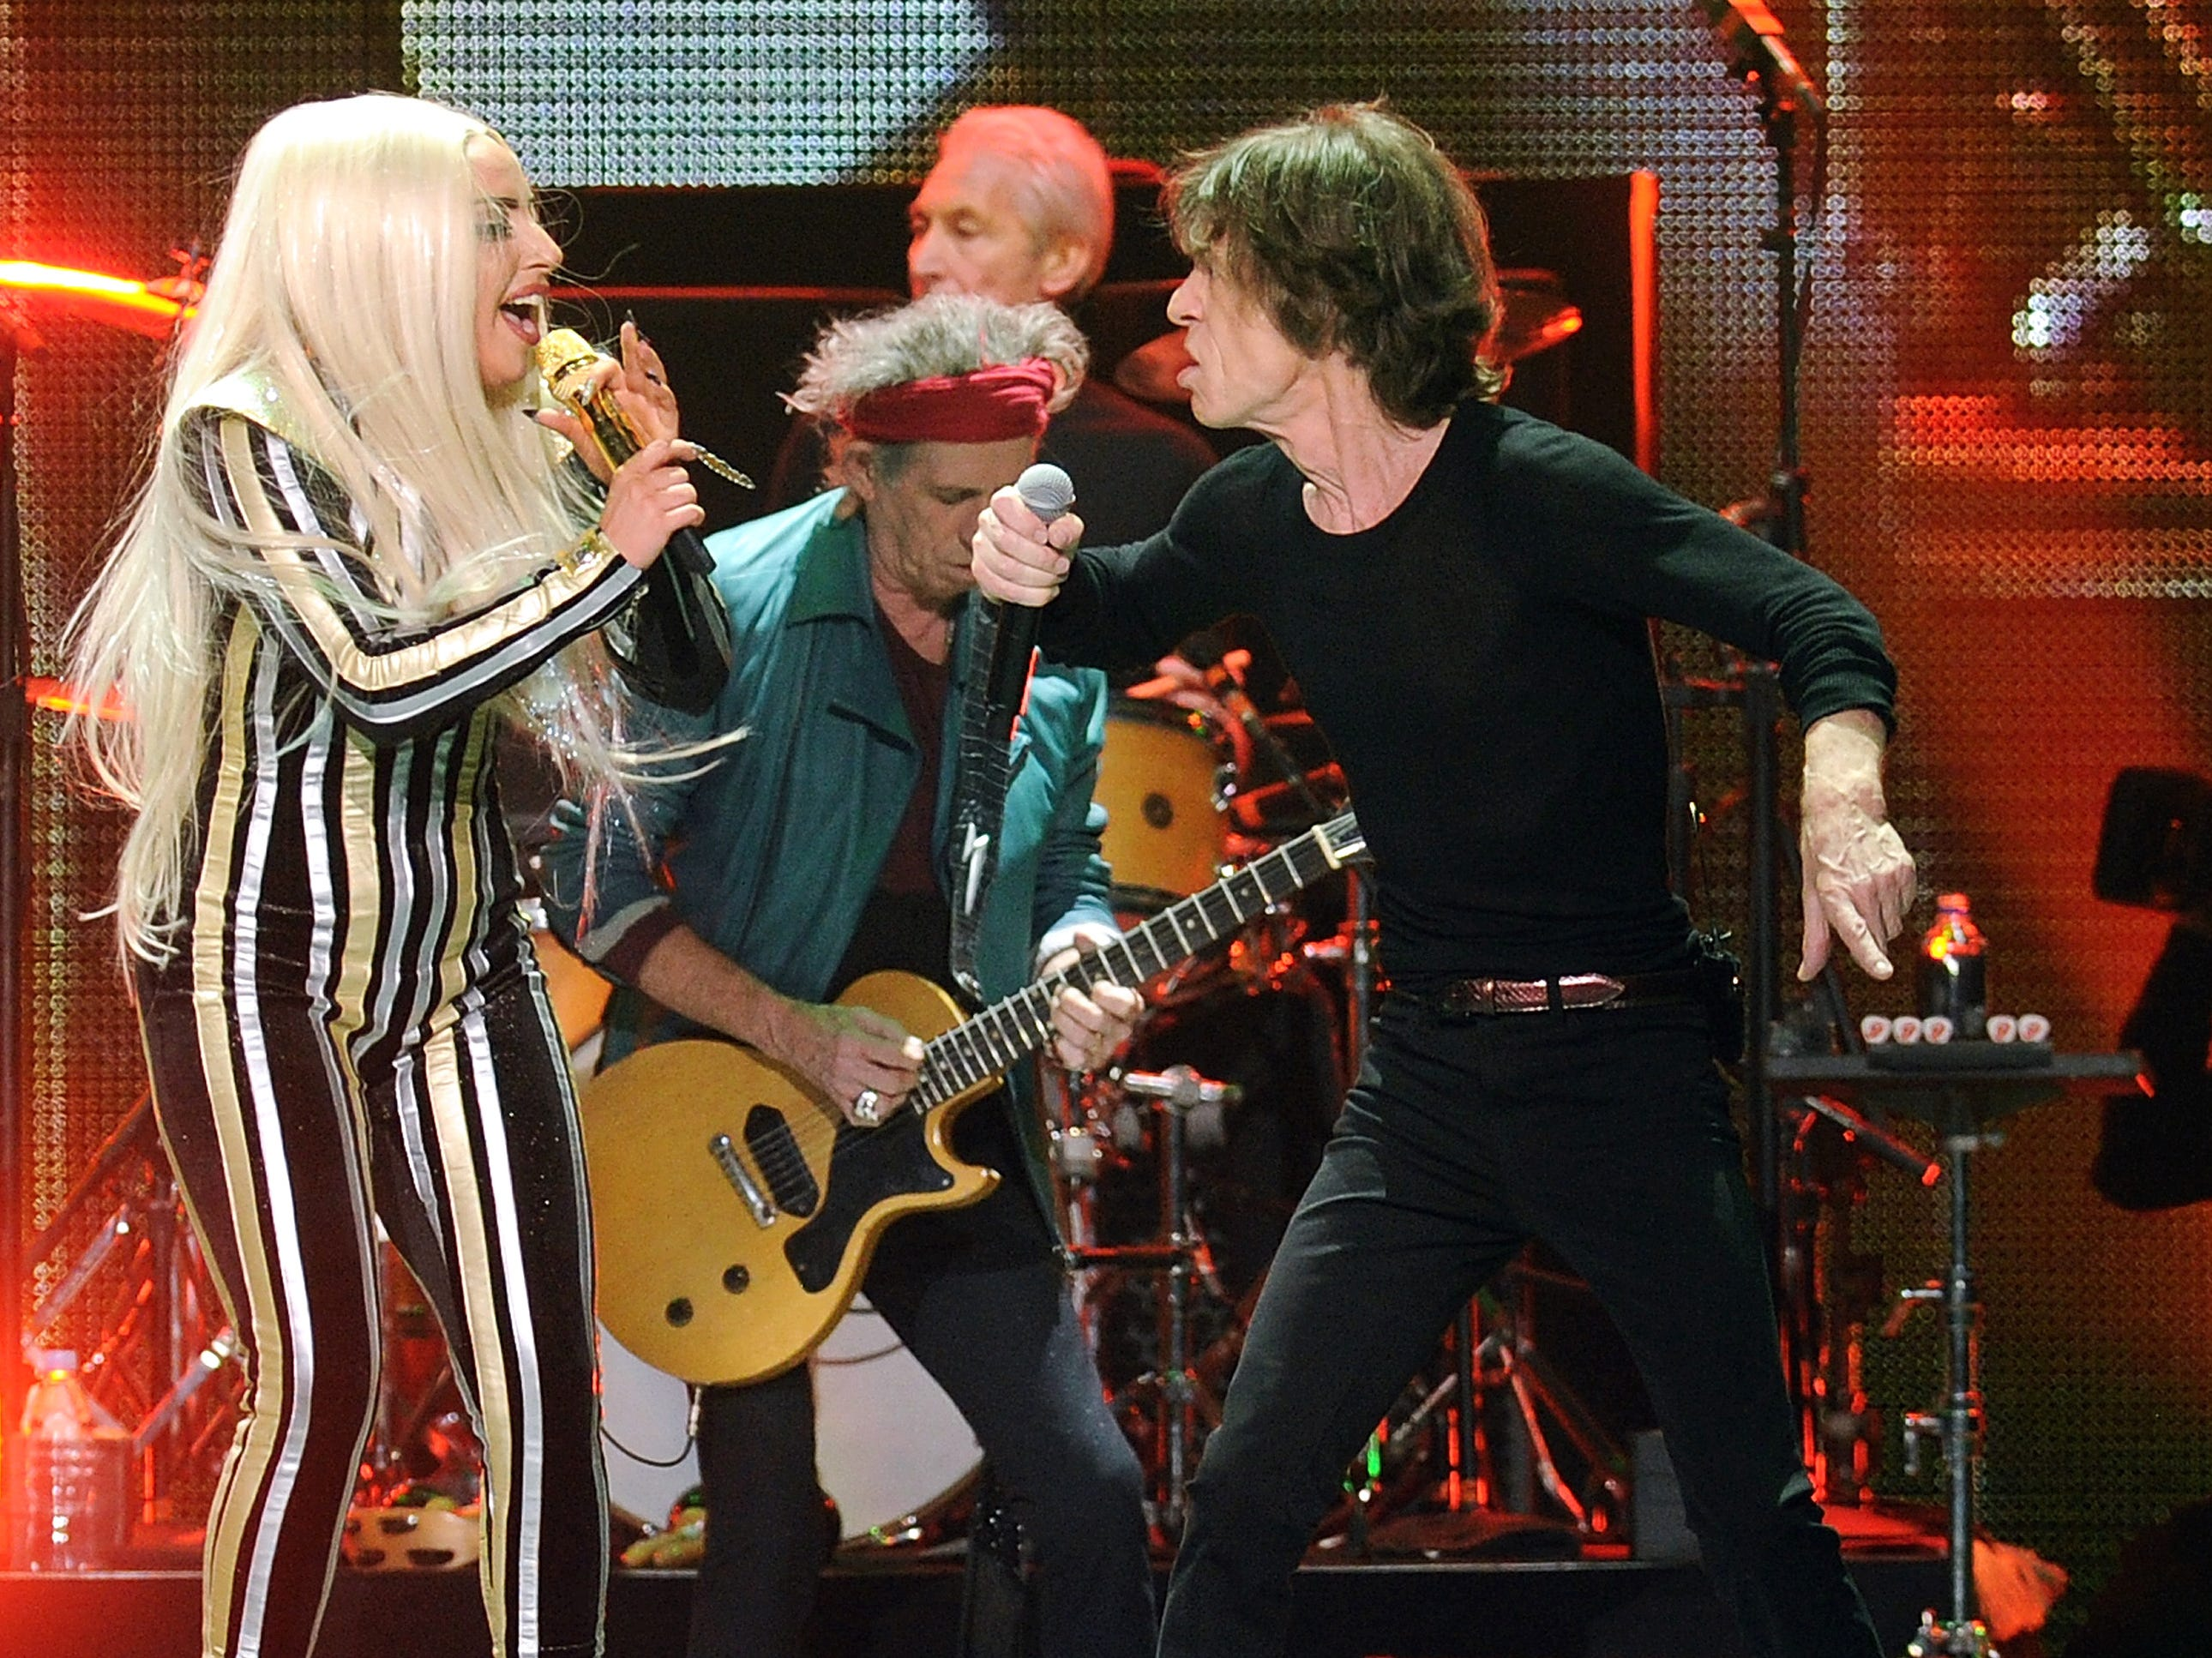 Singer Lady Gaga and Mick Jagger of The Rolling Stones perform together at the Prudential Center in Newark, NJ on Saturday, Dec. 15, 2012. (Photo by Evan Agostini/Invision/AP) ORG XMIT: NYEA106